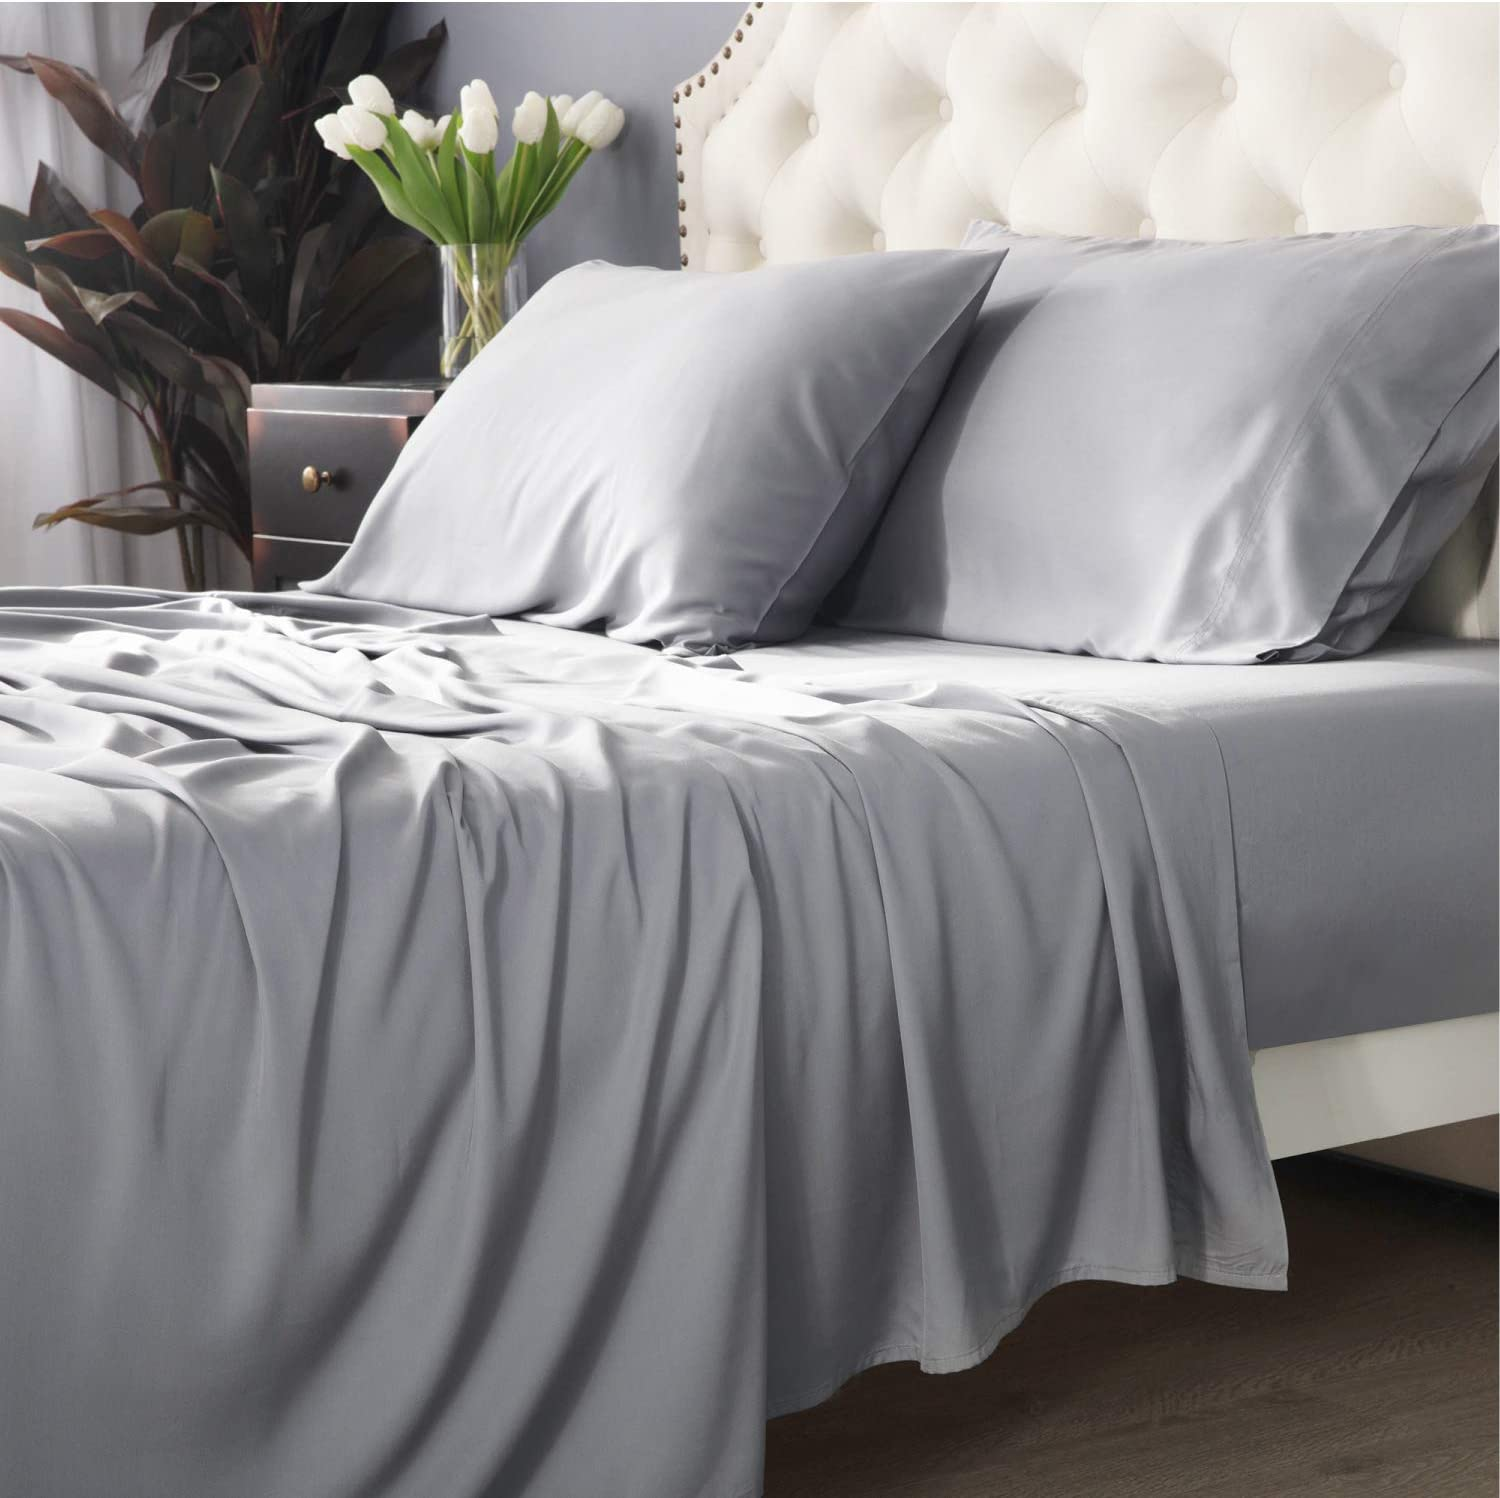 Bedsure 100% Bamboo Sheets King Size Cooling Sheets Deep Pocket Bed Sheets-Super Soft Breathable - 4 Pieces 1 Fitted Sheet with 16 Inches, 1 Flat Sheet, 2 Pillowcases-Light Grey